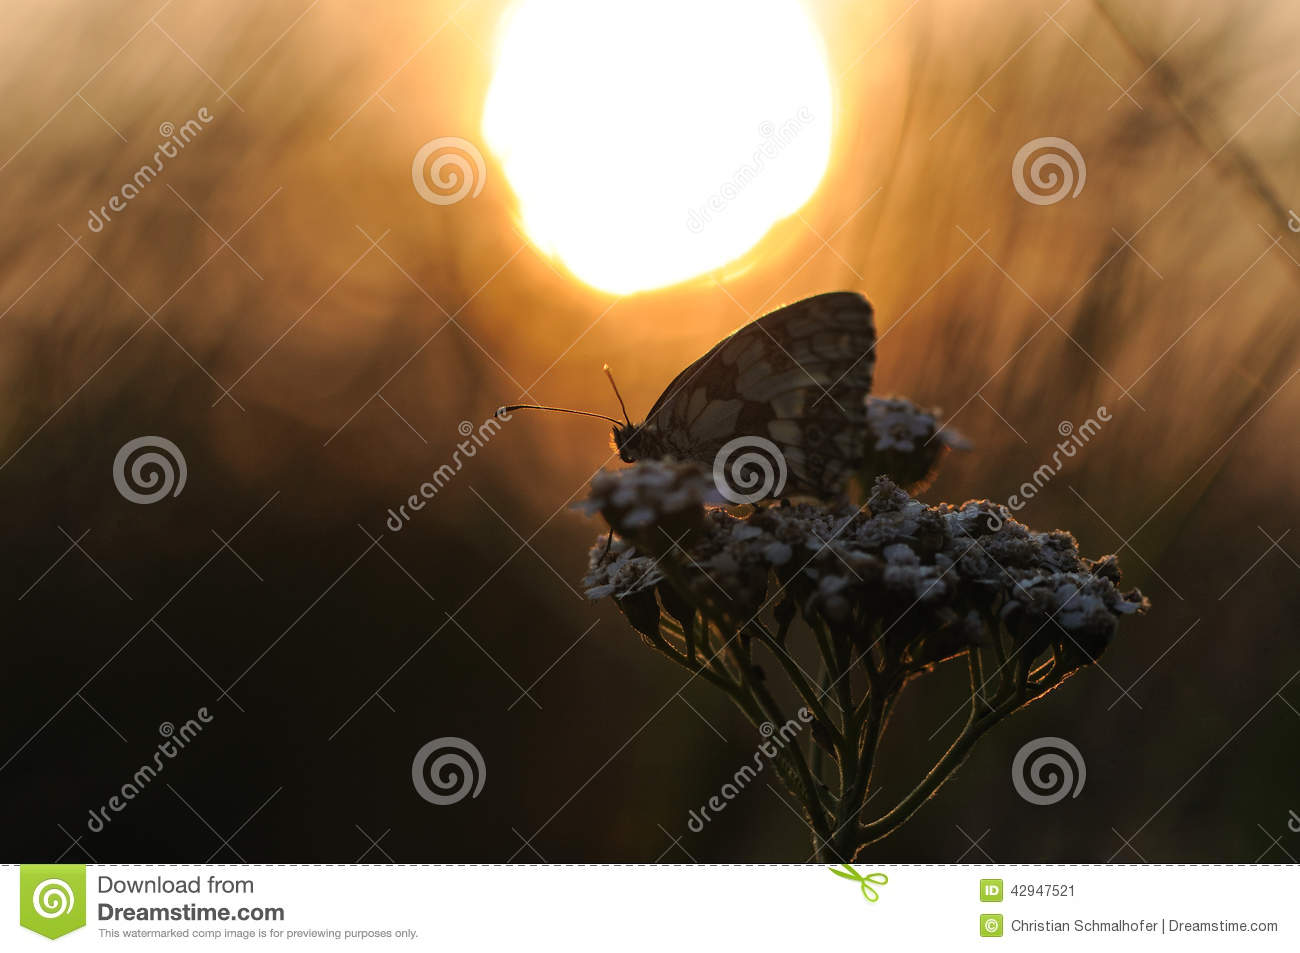 Butterfly in the Sunrise